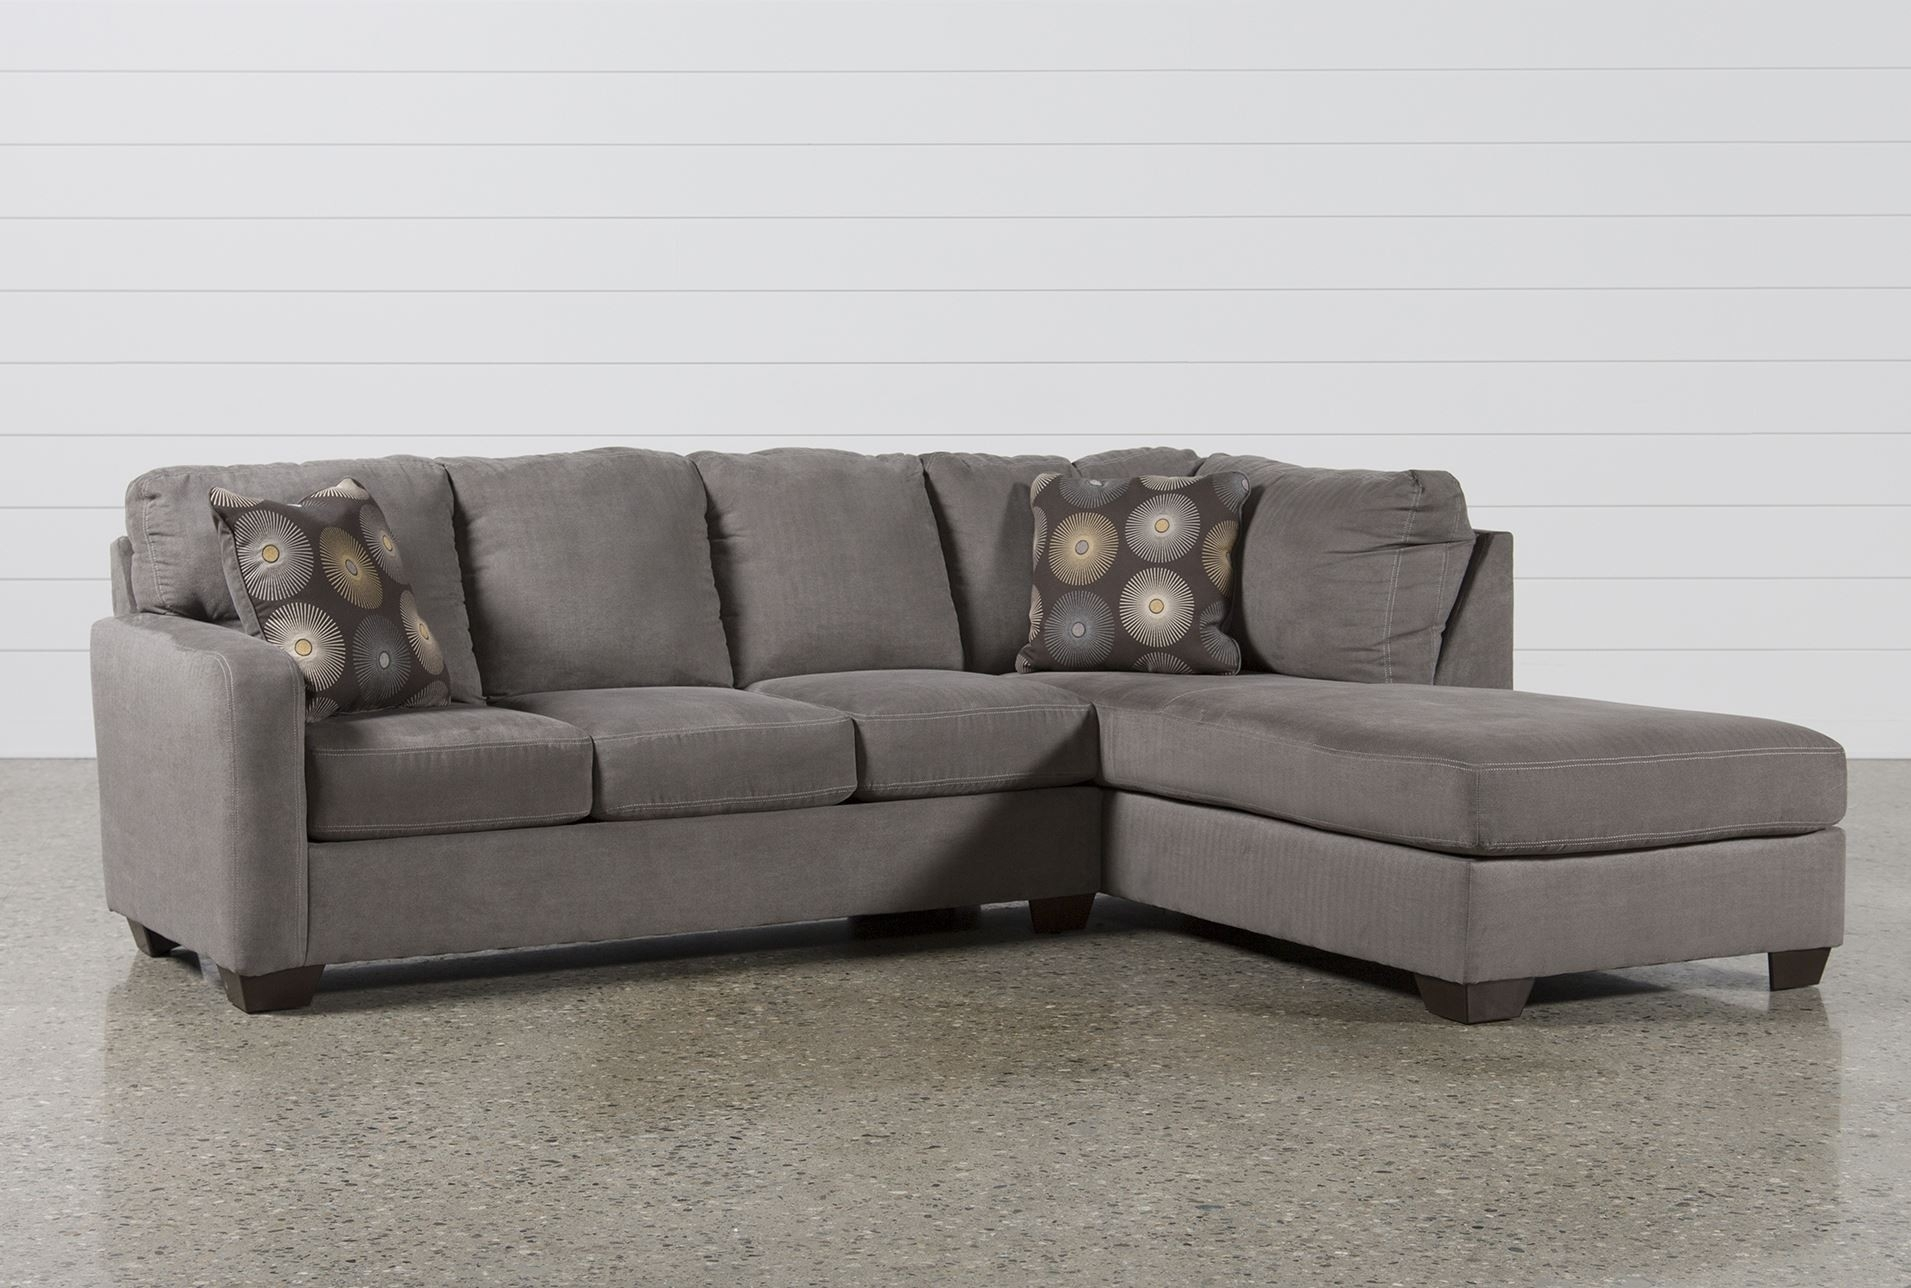 Lovely 2 Piece Sectional Sofa – Buildsimplehome Throughout Evan 2 Piece Sectionals With Raf Chaise (Image 22 of 25)